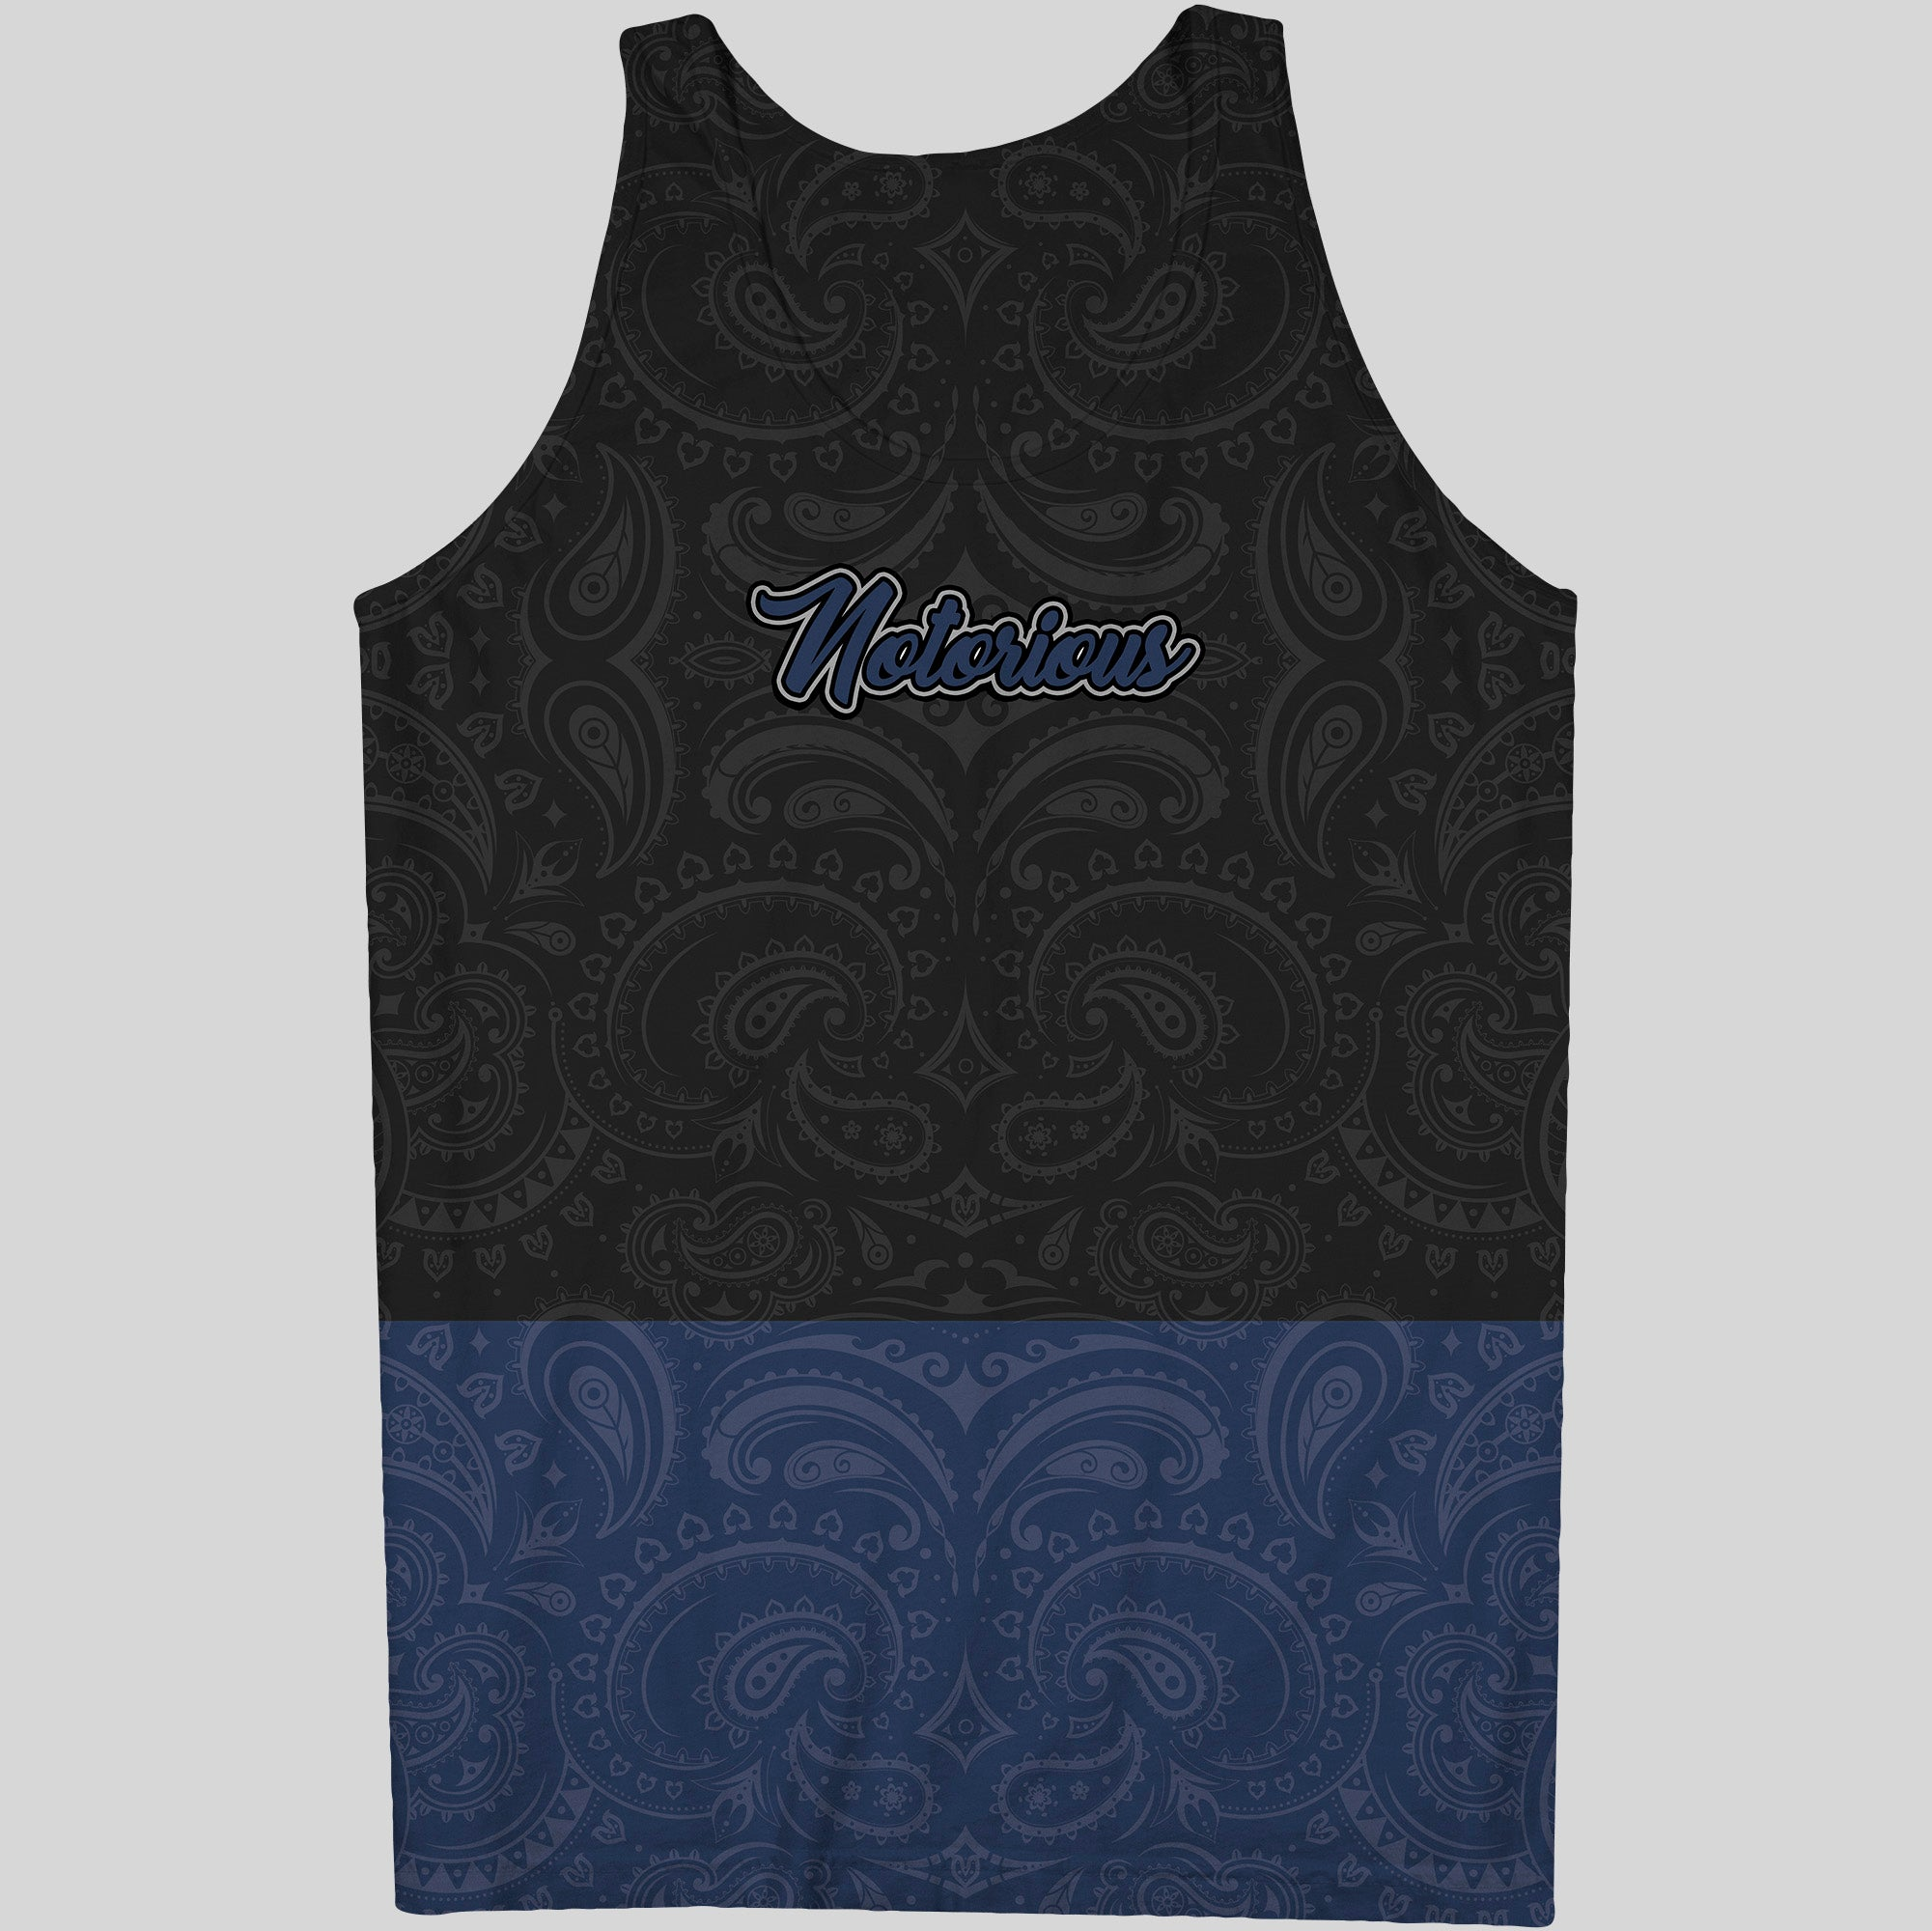 Notorious Tank Top